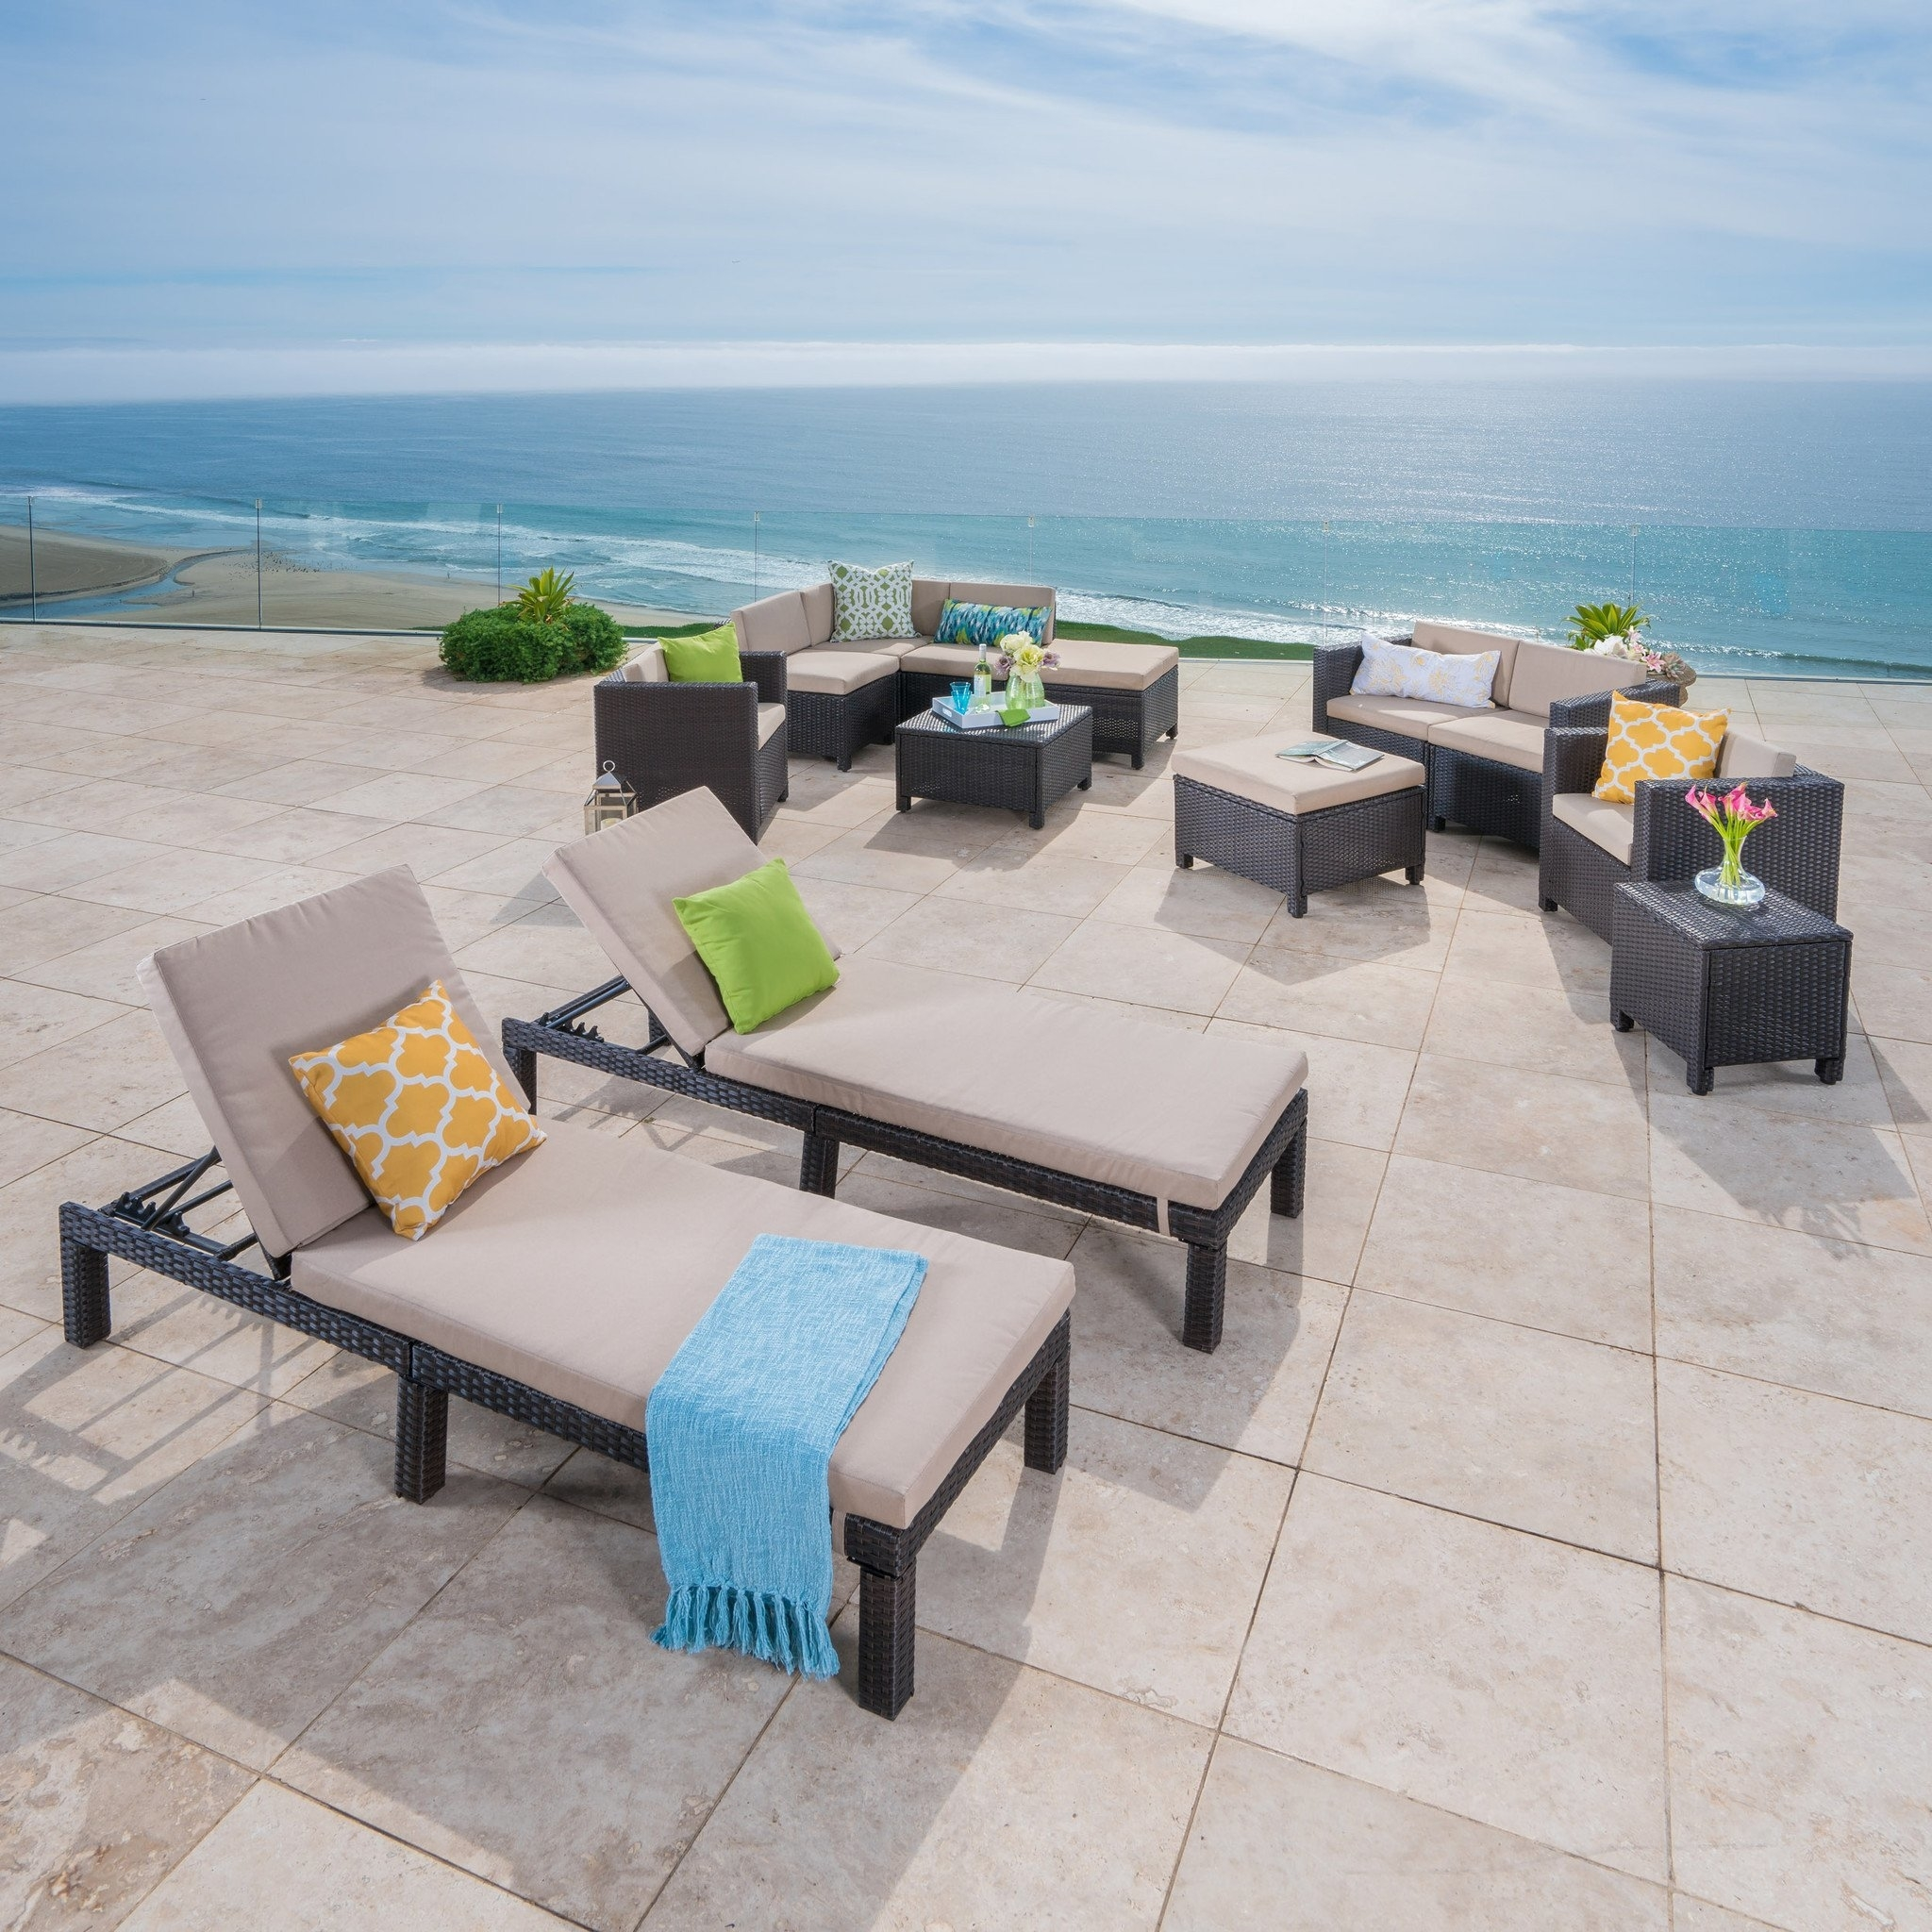 Patagonia Outdoor 13 Pc Wicker Patio Set w/ Water Resistant Cushions